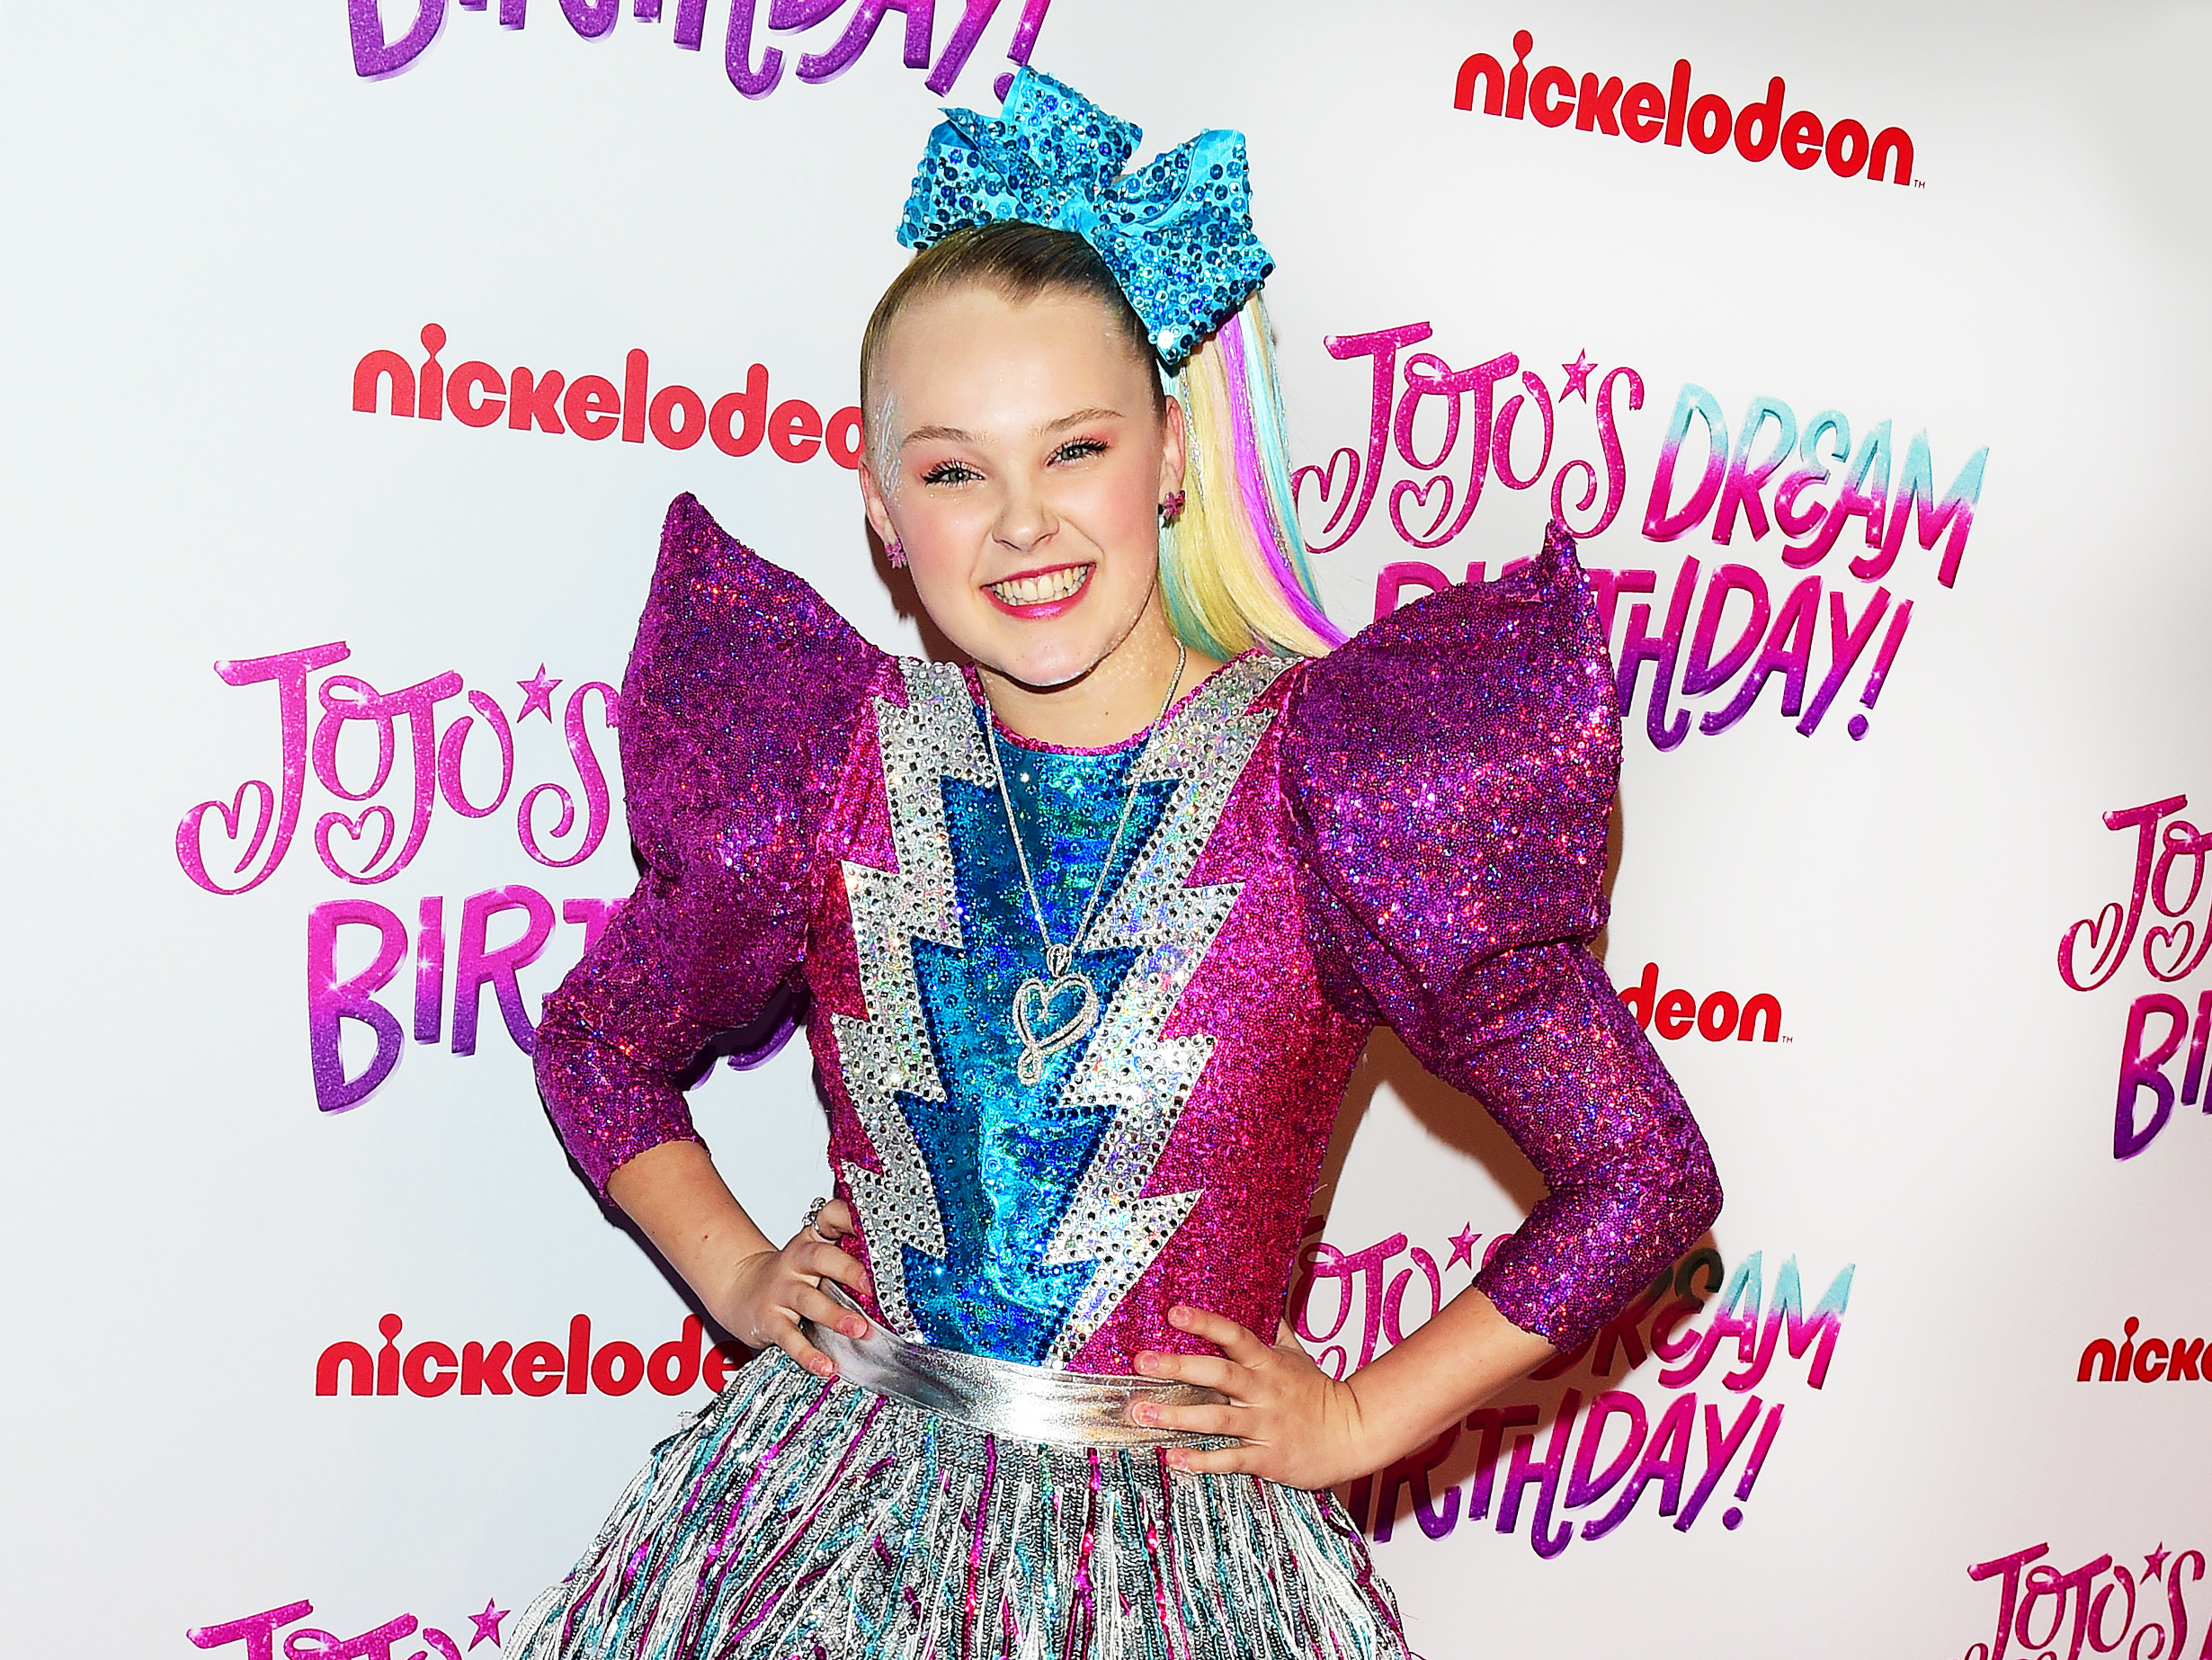 JoJo Siwa Speaks Out After Nonstop Music Video Sparks Blackface Accusations